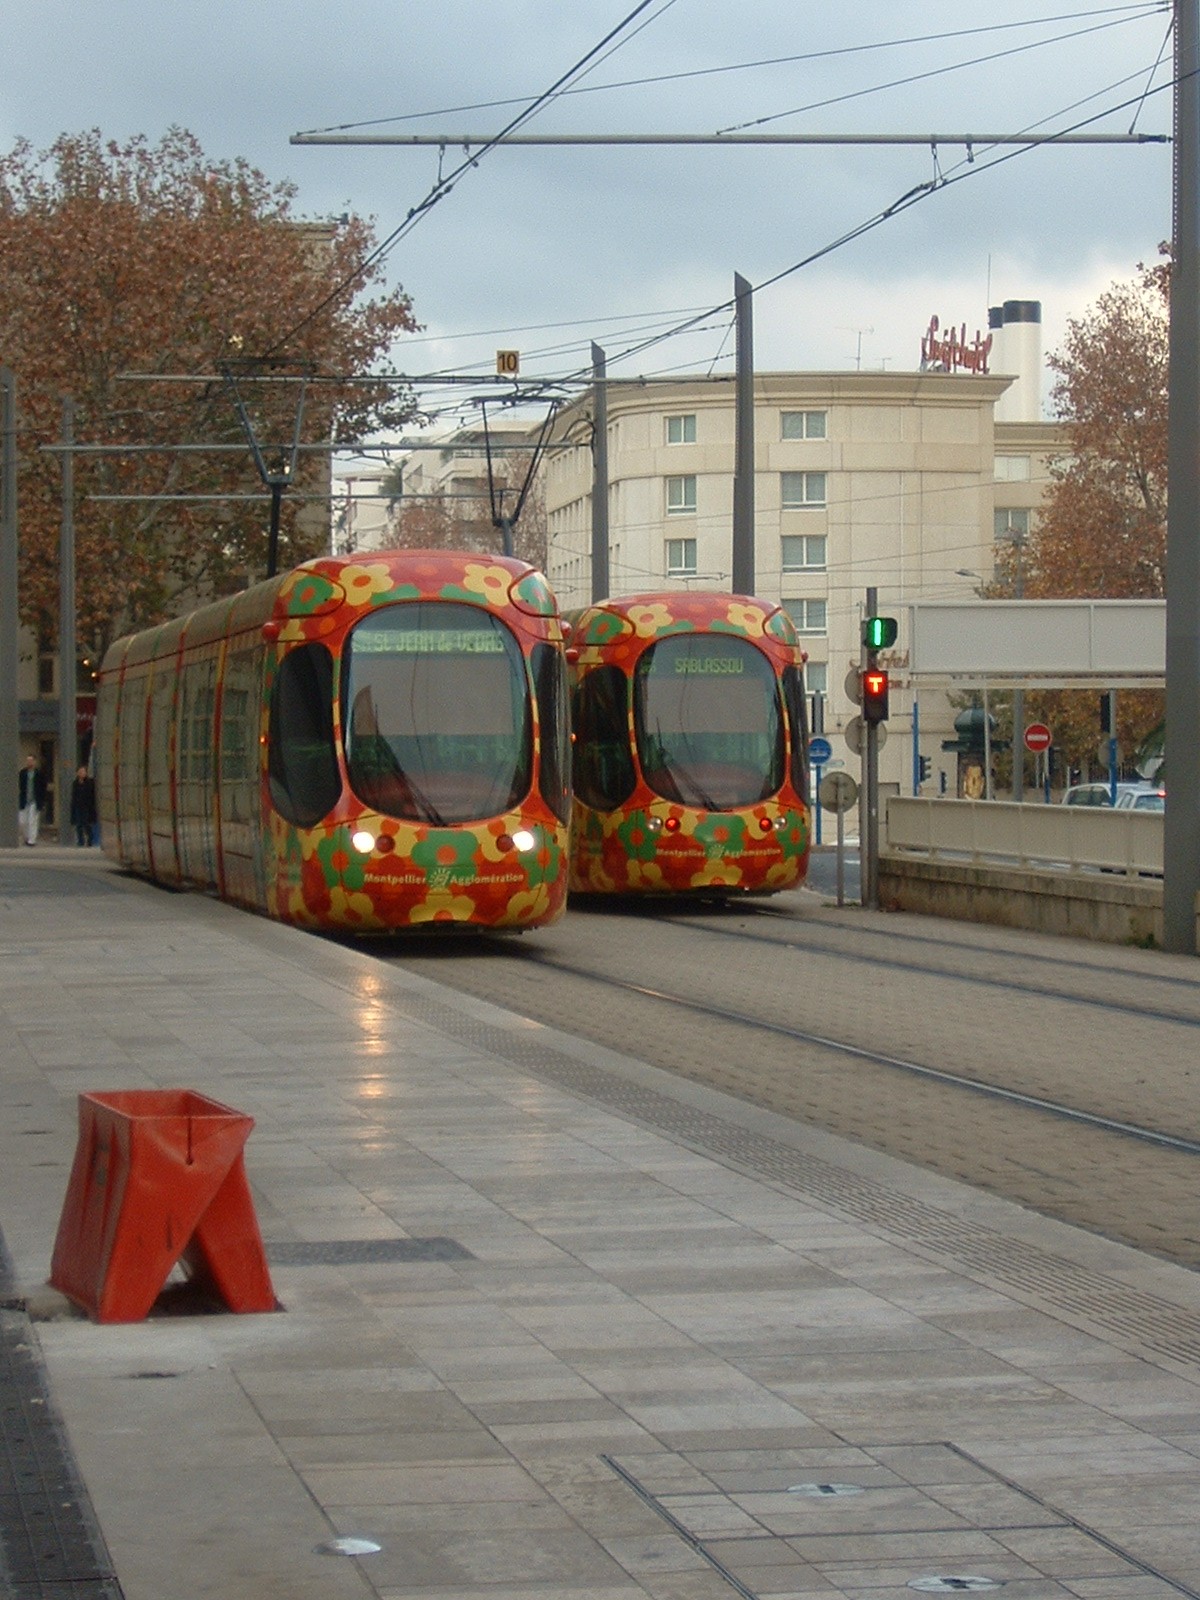 file ligne 2 du tramway de montpellier place de l europe. Black Bedroom Furniture Sets. Home Design Ideas